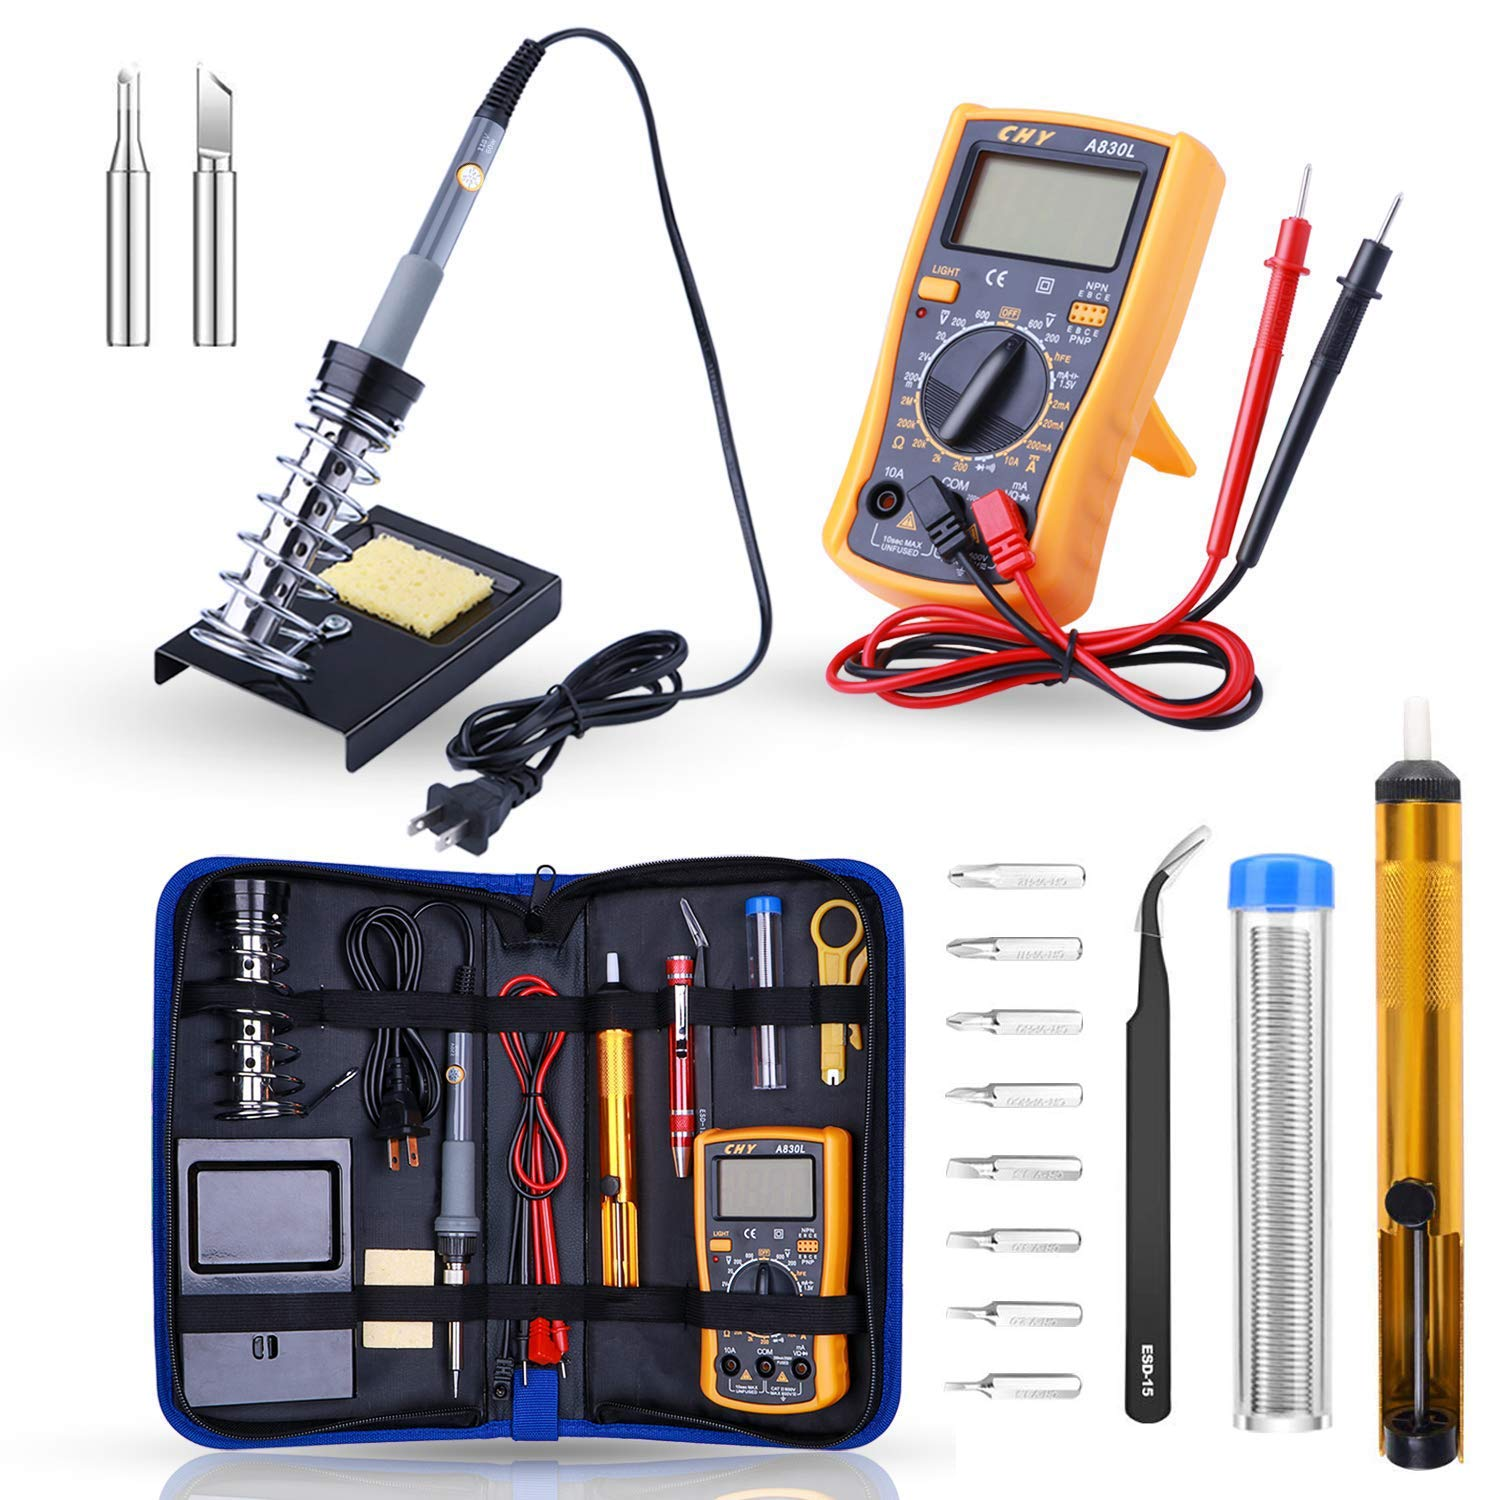 Rarlight Soldering Iron Kit Electronics, 60W Adjustable Temperature Welding Tool, Digital Multimeter, Desoldering Pump, Soldering Iron Stand, Wire Stripper Cutter, Tweezers, 2pcs Electronic Wire